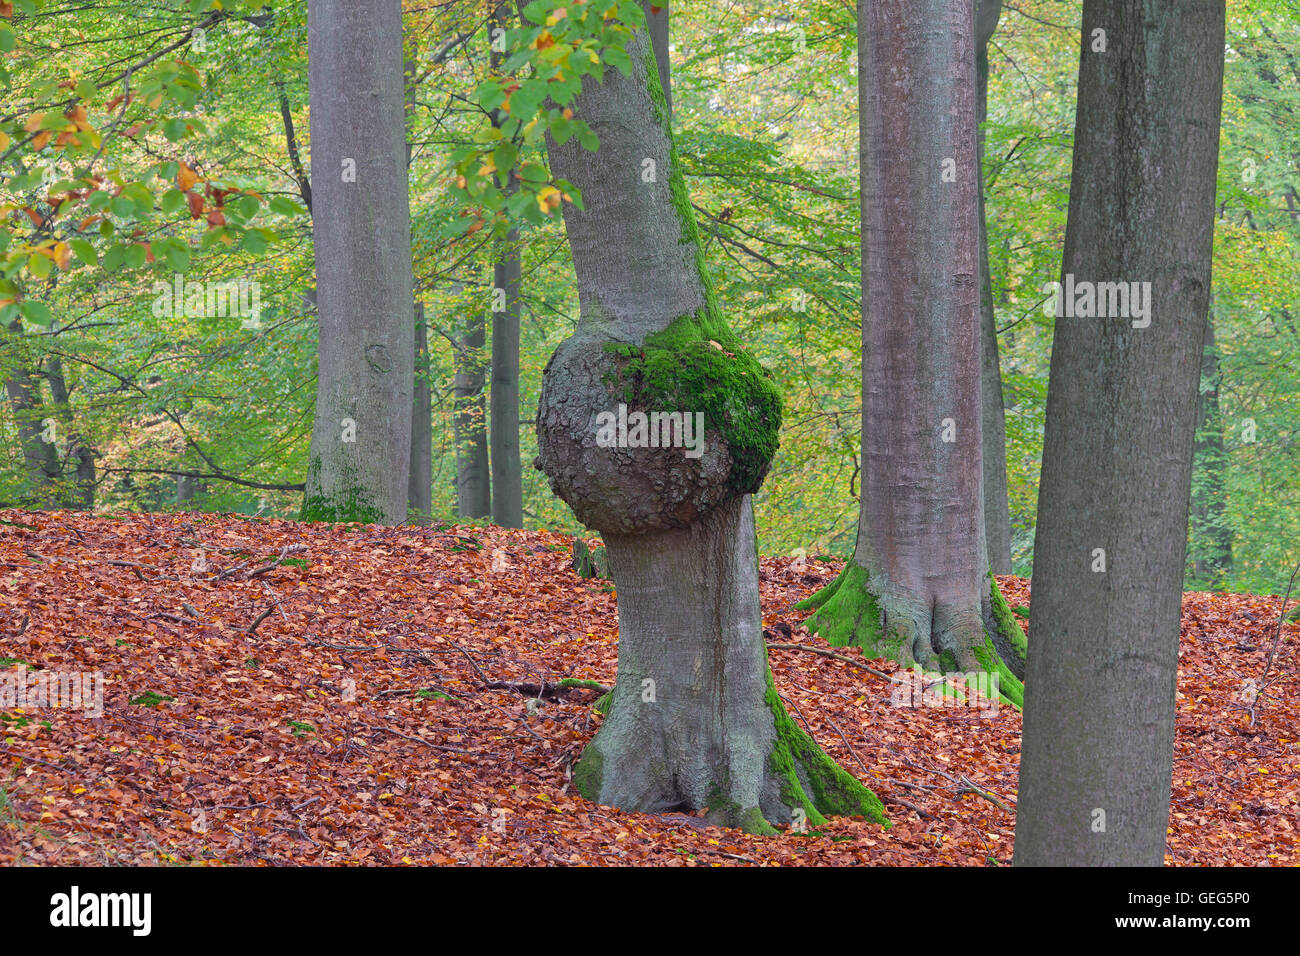 Burl / burr, rounded outgrowth on beech (Fagus sylvatica) tree trunk in forest - Stock Image